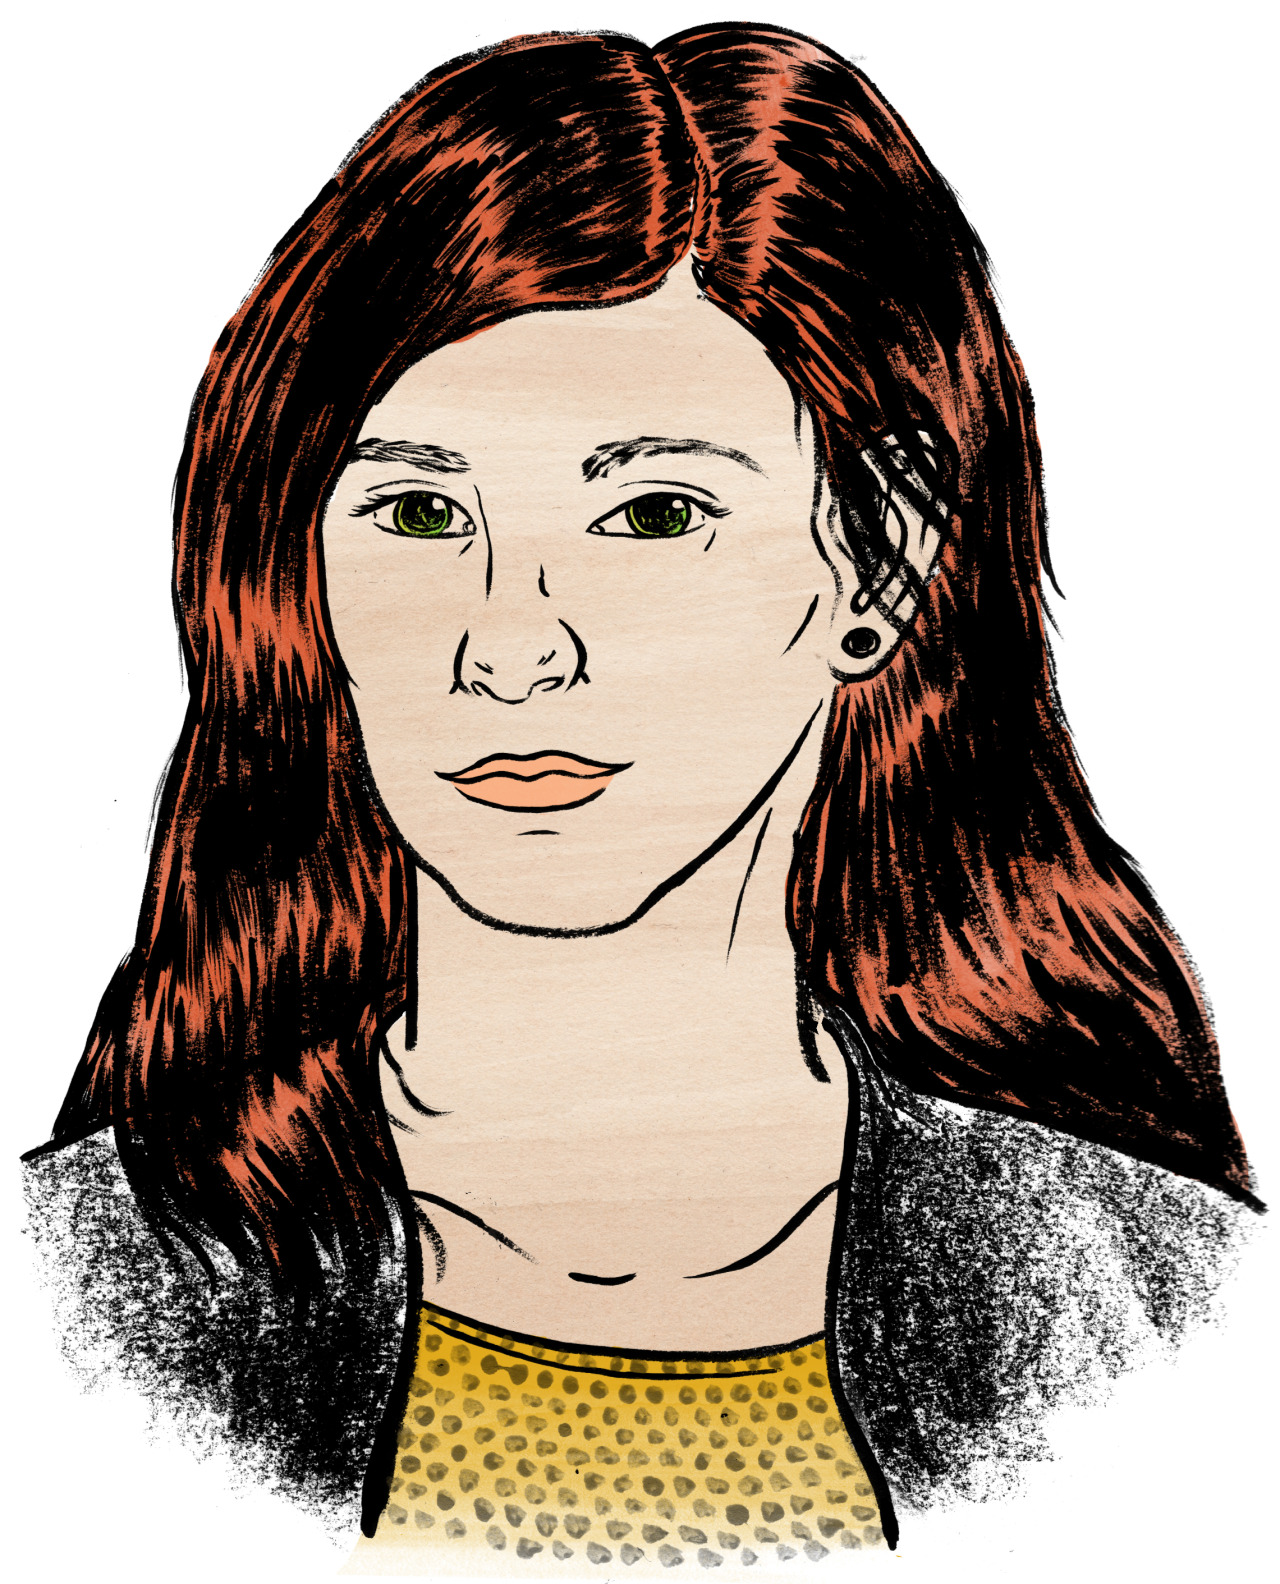 My best friend Dani Diendorf  asked me to draw a portrait of her. I felt flattered and was glad to do so.